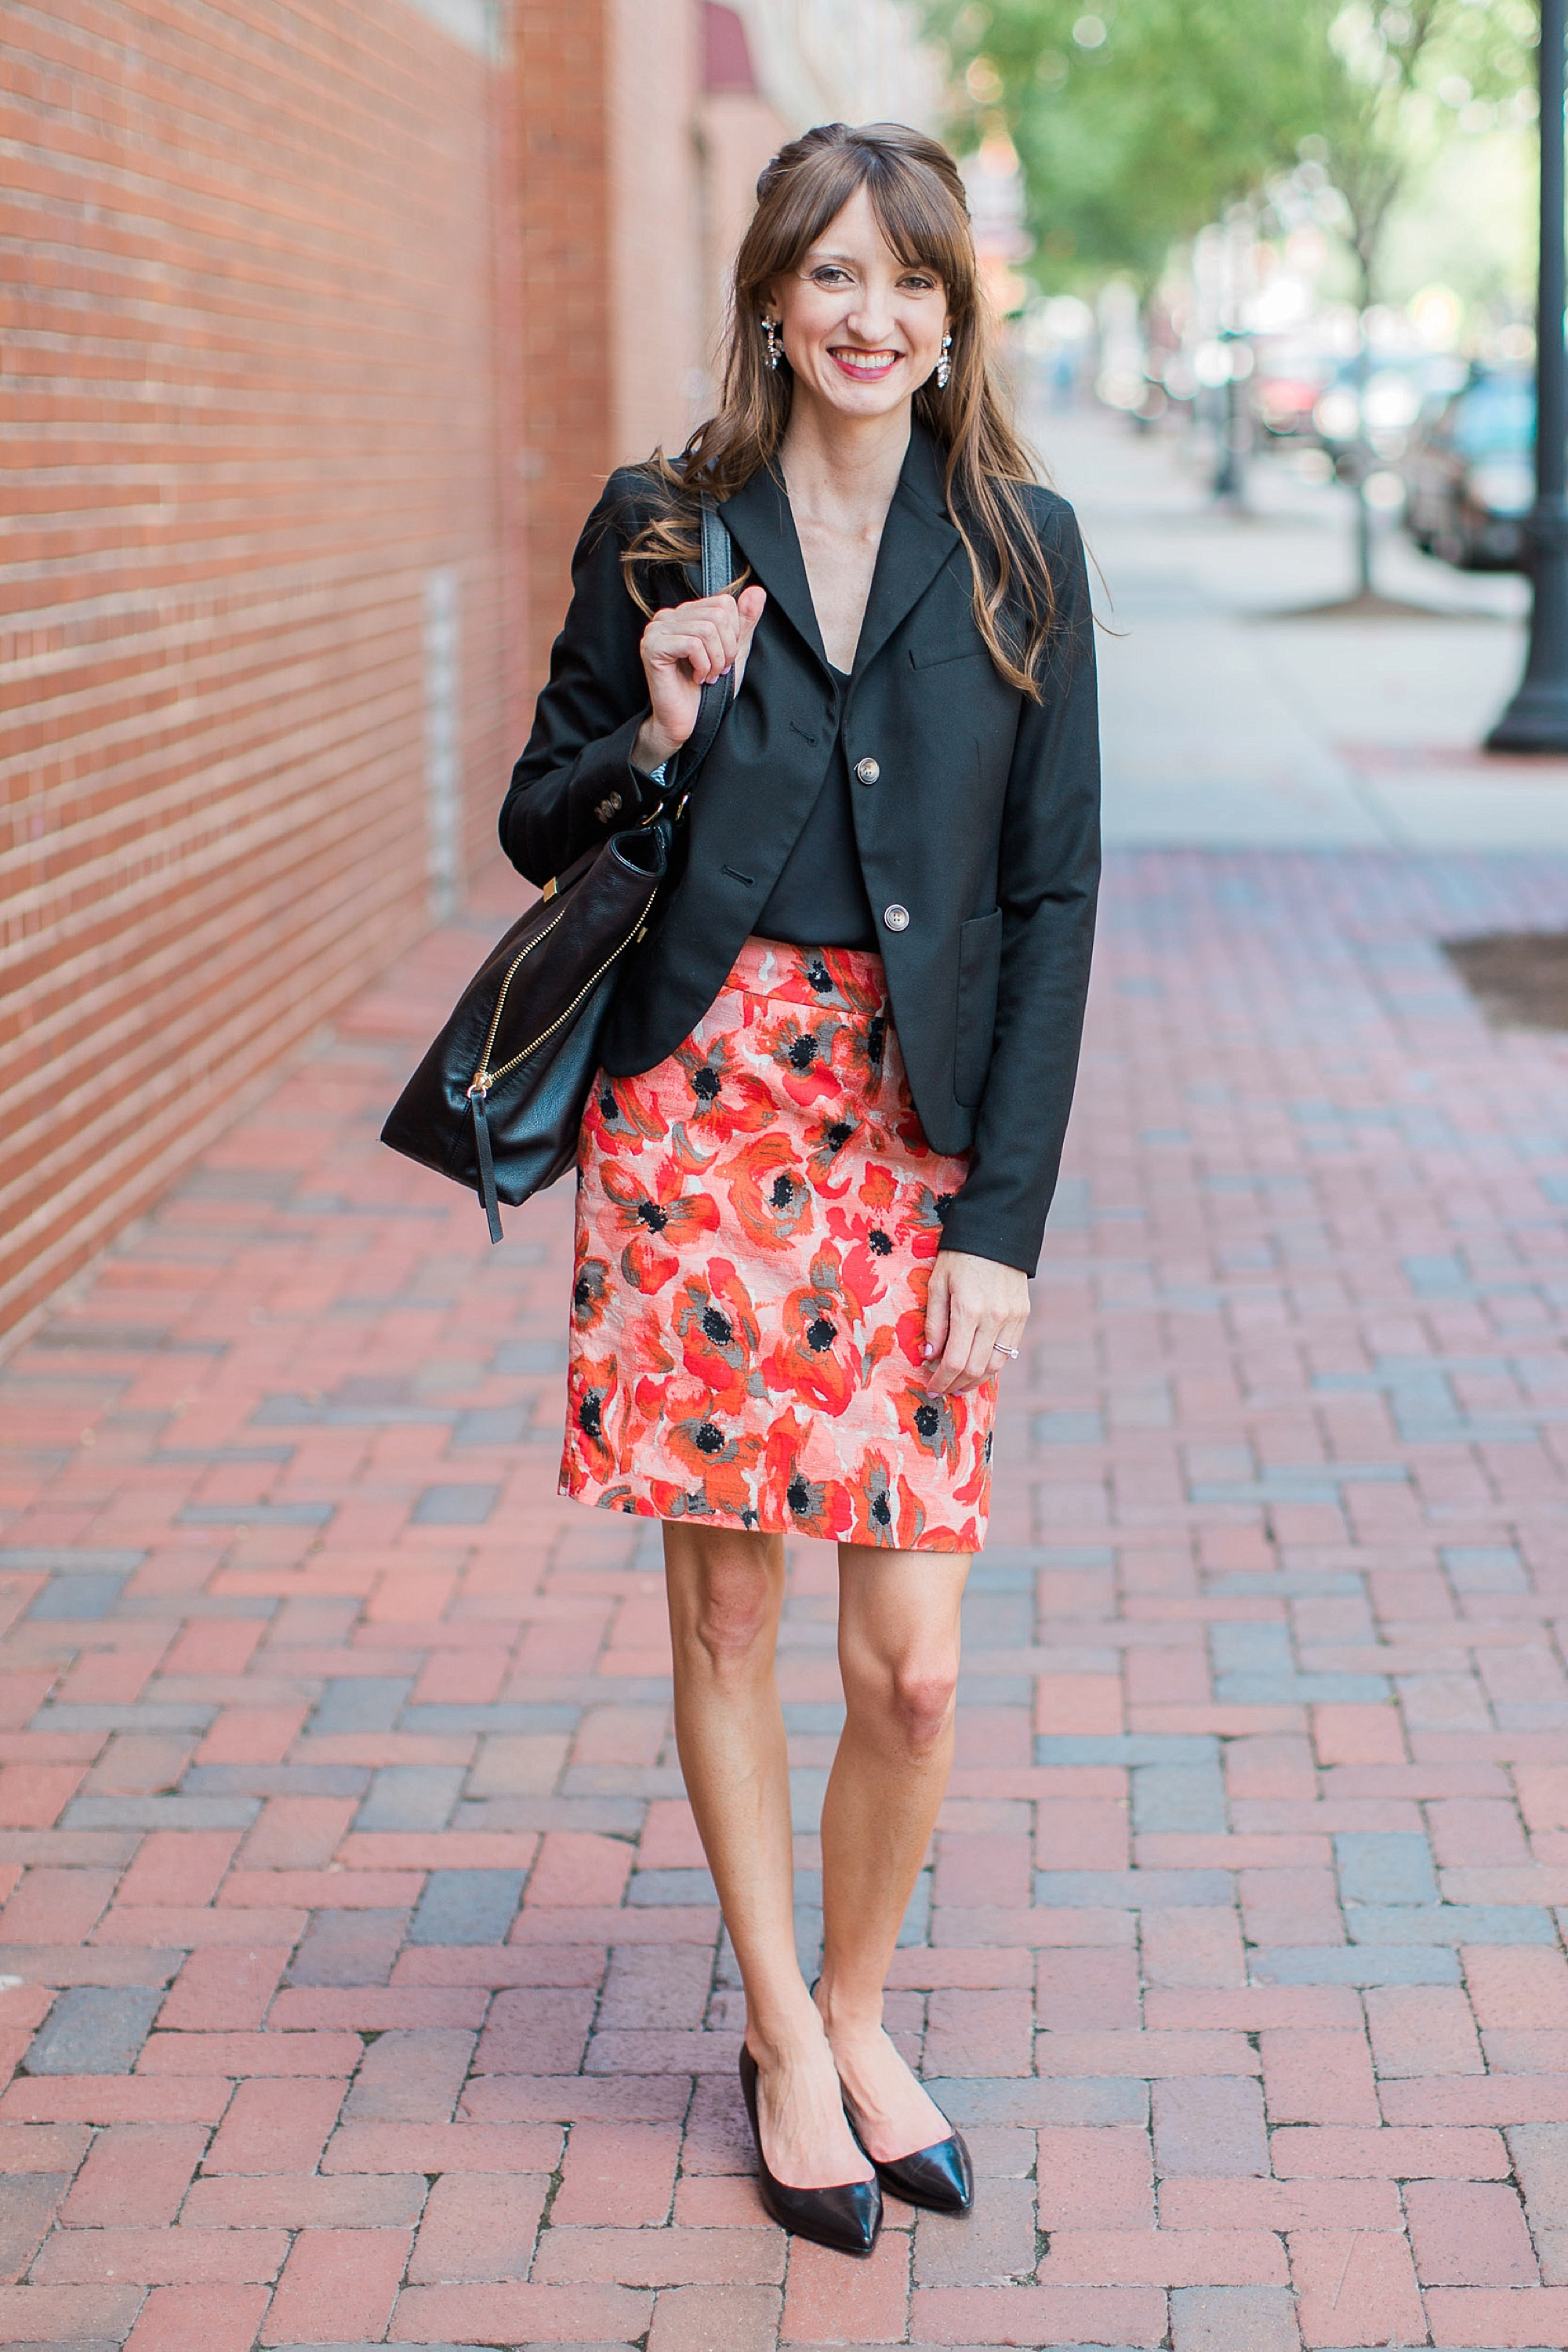 """BLAZER: Gap (Similar   here   and   here  ); TOP:   Topshop  ; SKIRT: Ann Taylor (similar   here   and   here  ); SHOES:   Nine West  ; TOTE BAG: Banana Republic (similar   here    and 40% off!); EARRINGS: J Crew (similar   here  ); LIPS:   Revlon Lipstick   in """"Wine With Everything;"""" CLUTCH PURSE (shown later): Francesca's (similar   here   and   here  ). Photos by   Sammi Evans Photography  ."""